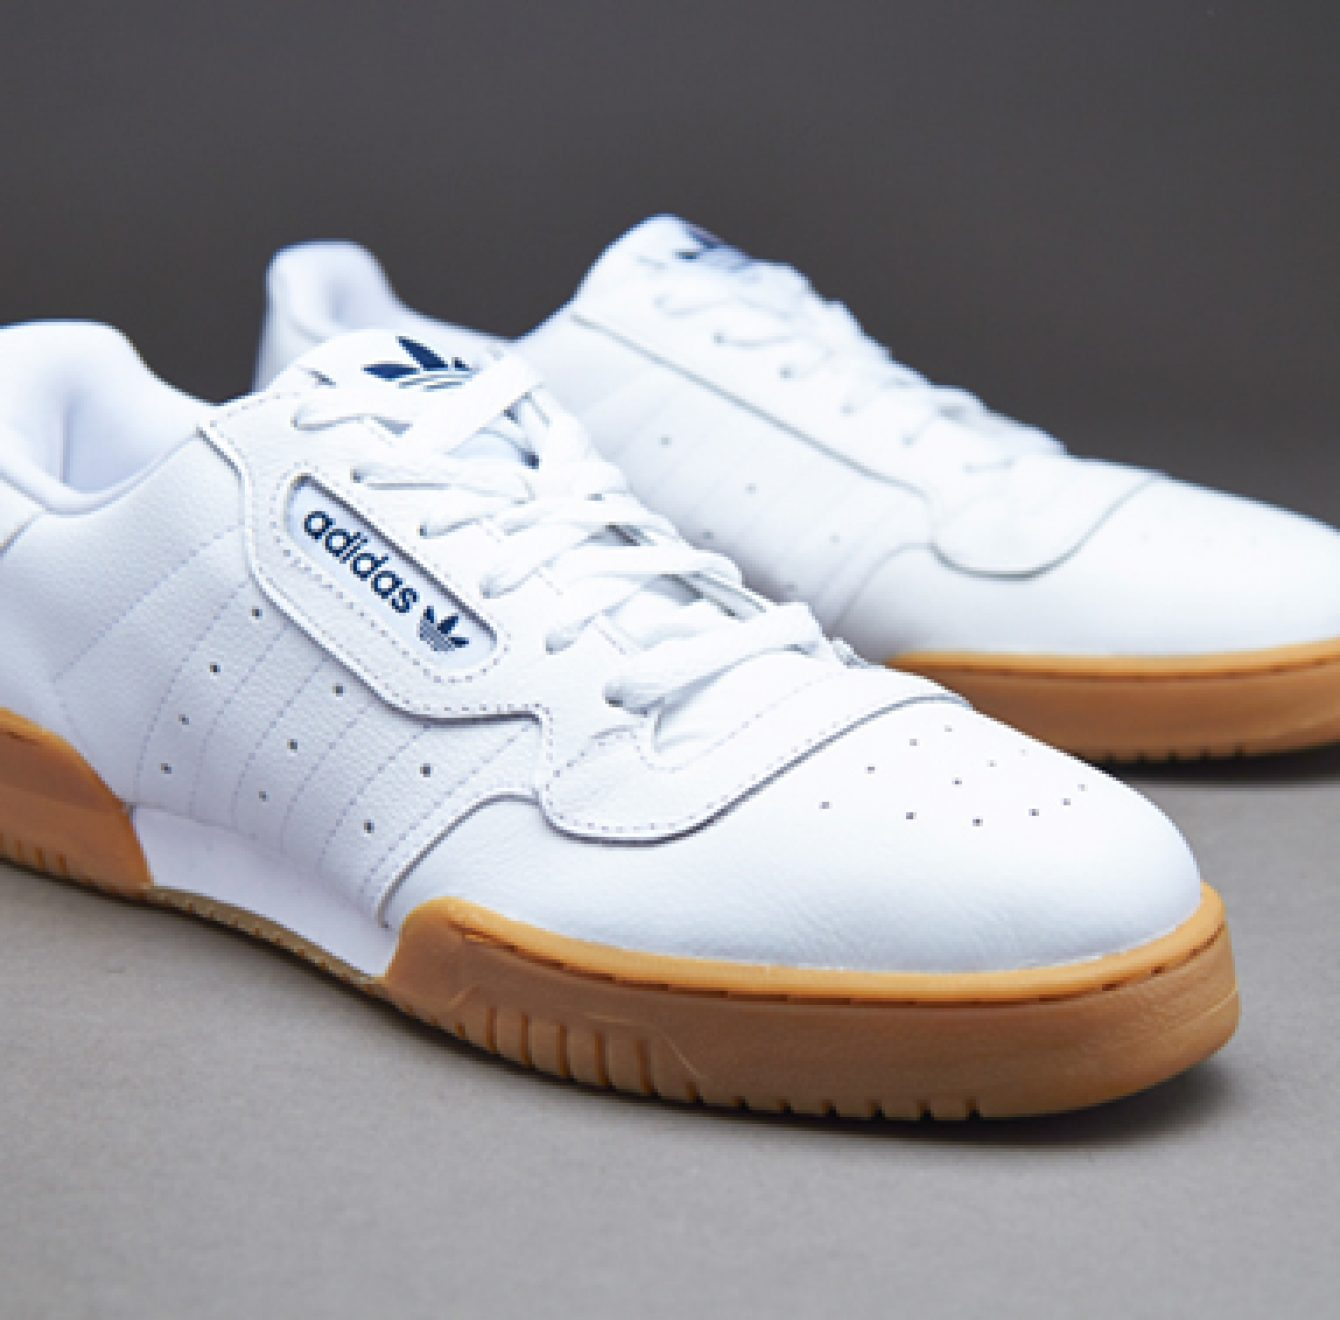 Les Adidas Calabasas Powerphase arrivent | NOBODY CARES